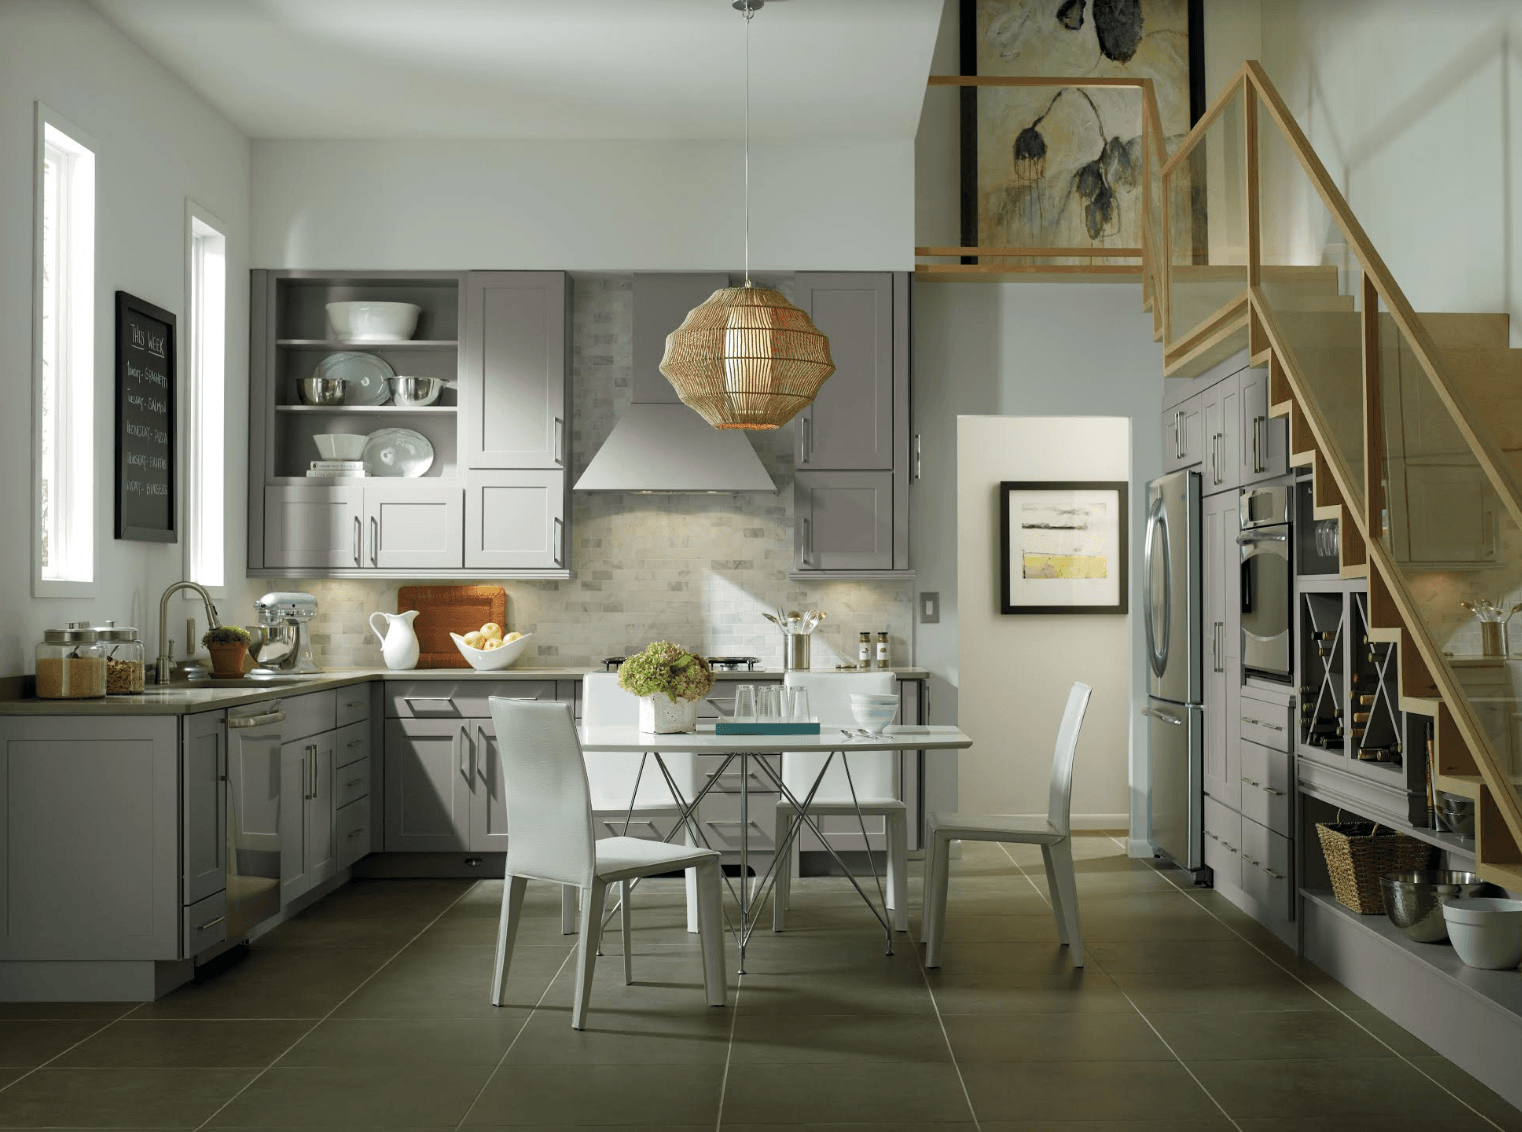 What makes your dream kitchen remodel?